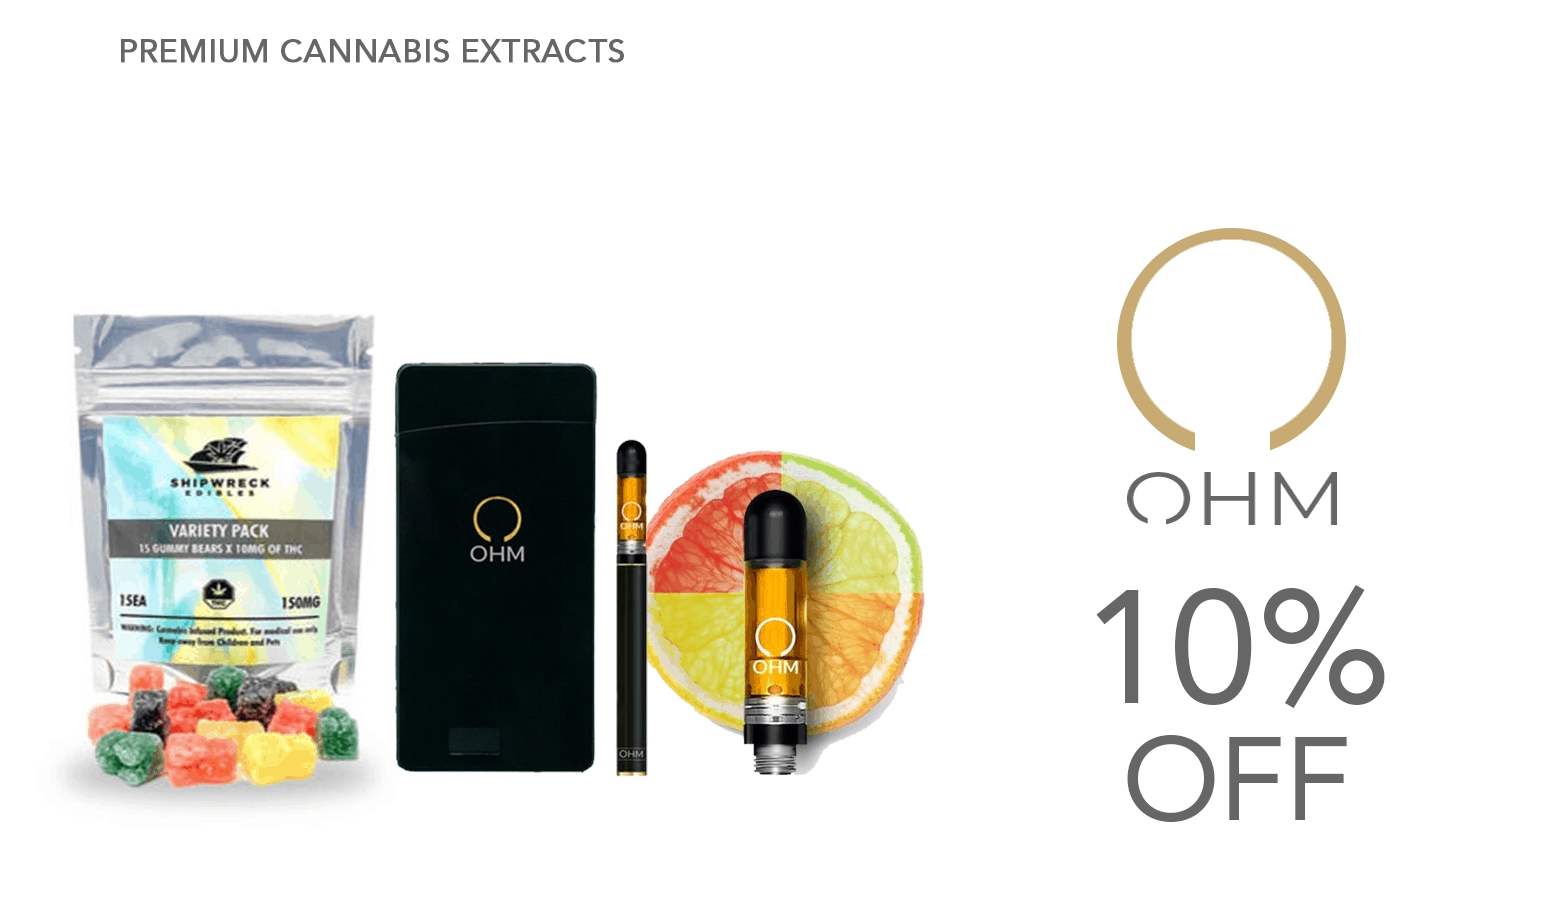 OHM CBD Coupon Code Offer Website